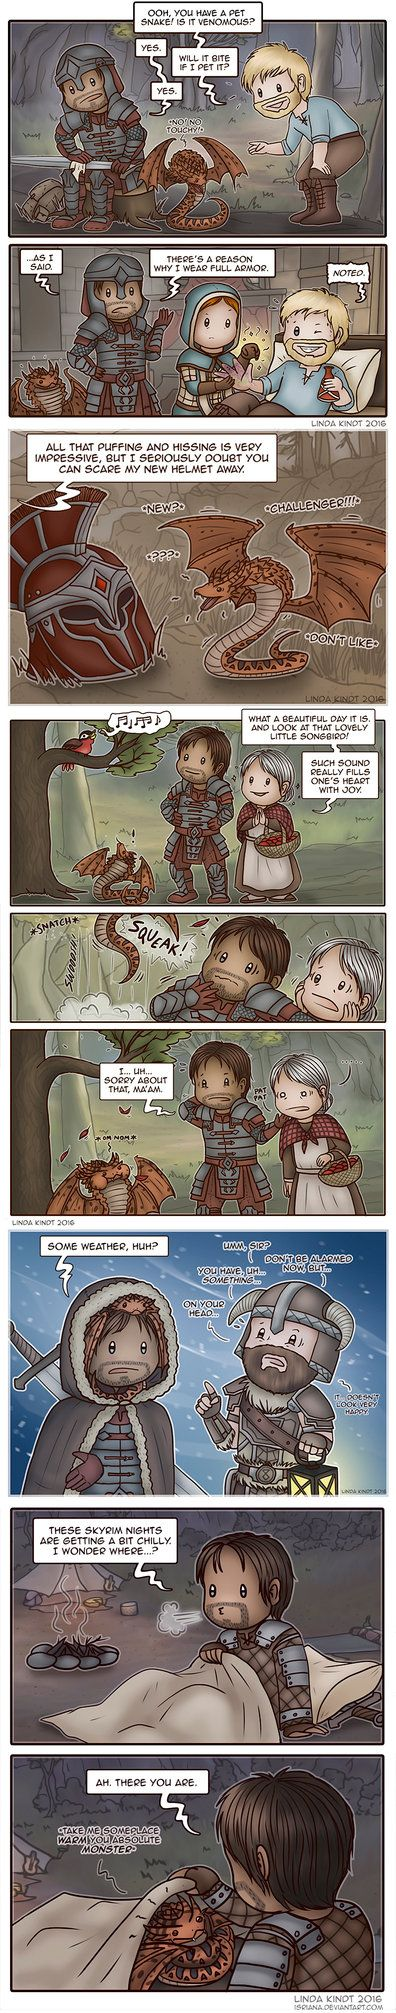 TESO: Adventures of Davius and Snek pt. 1 by Isriana on DeviantArt